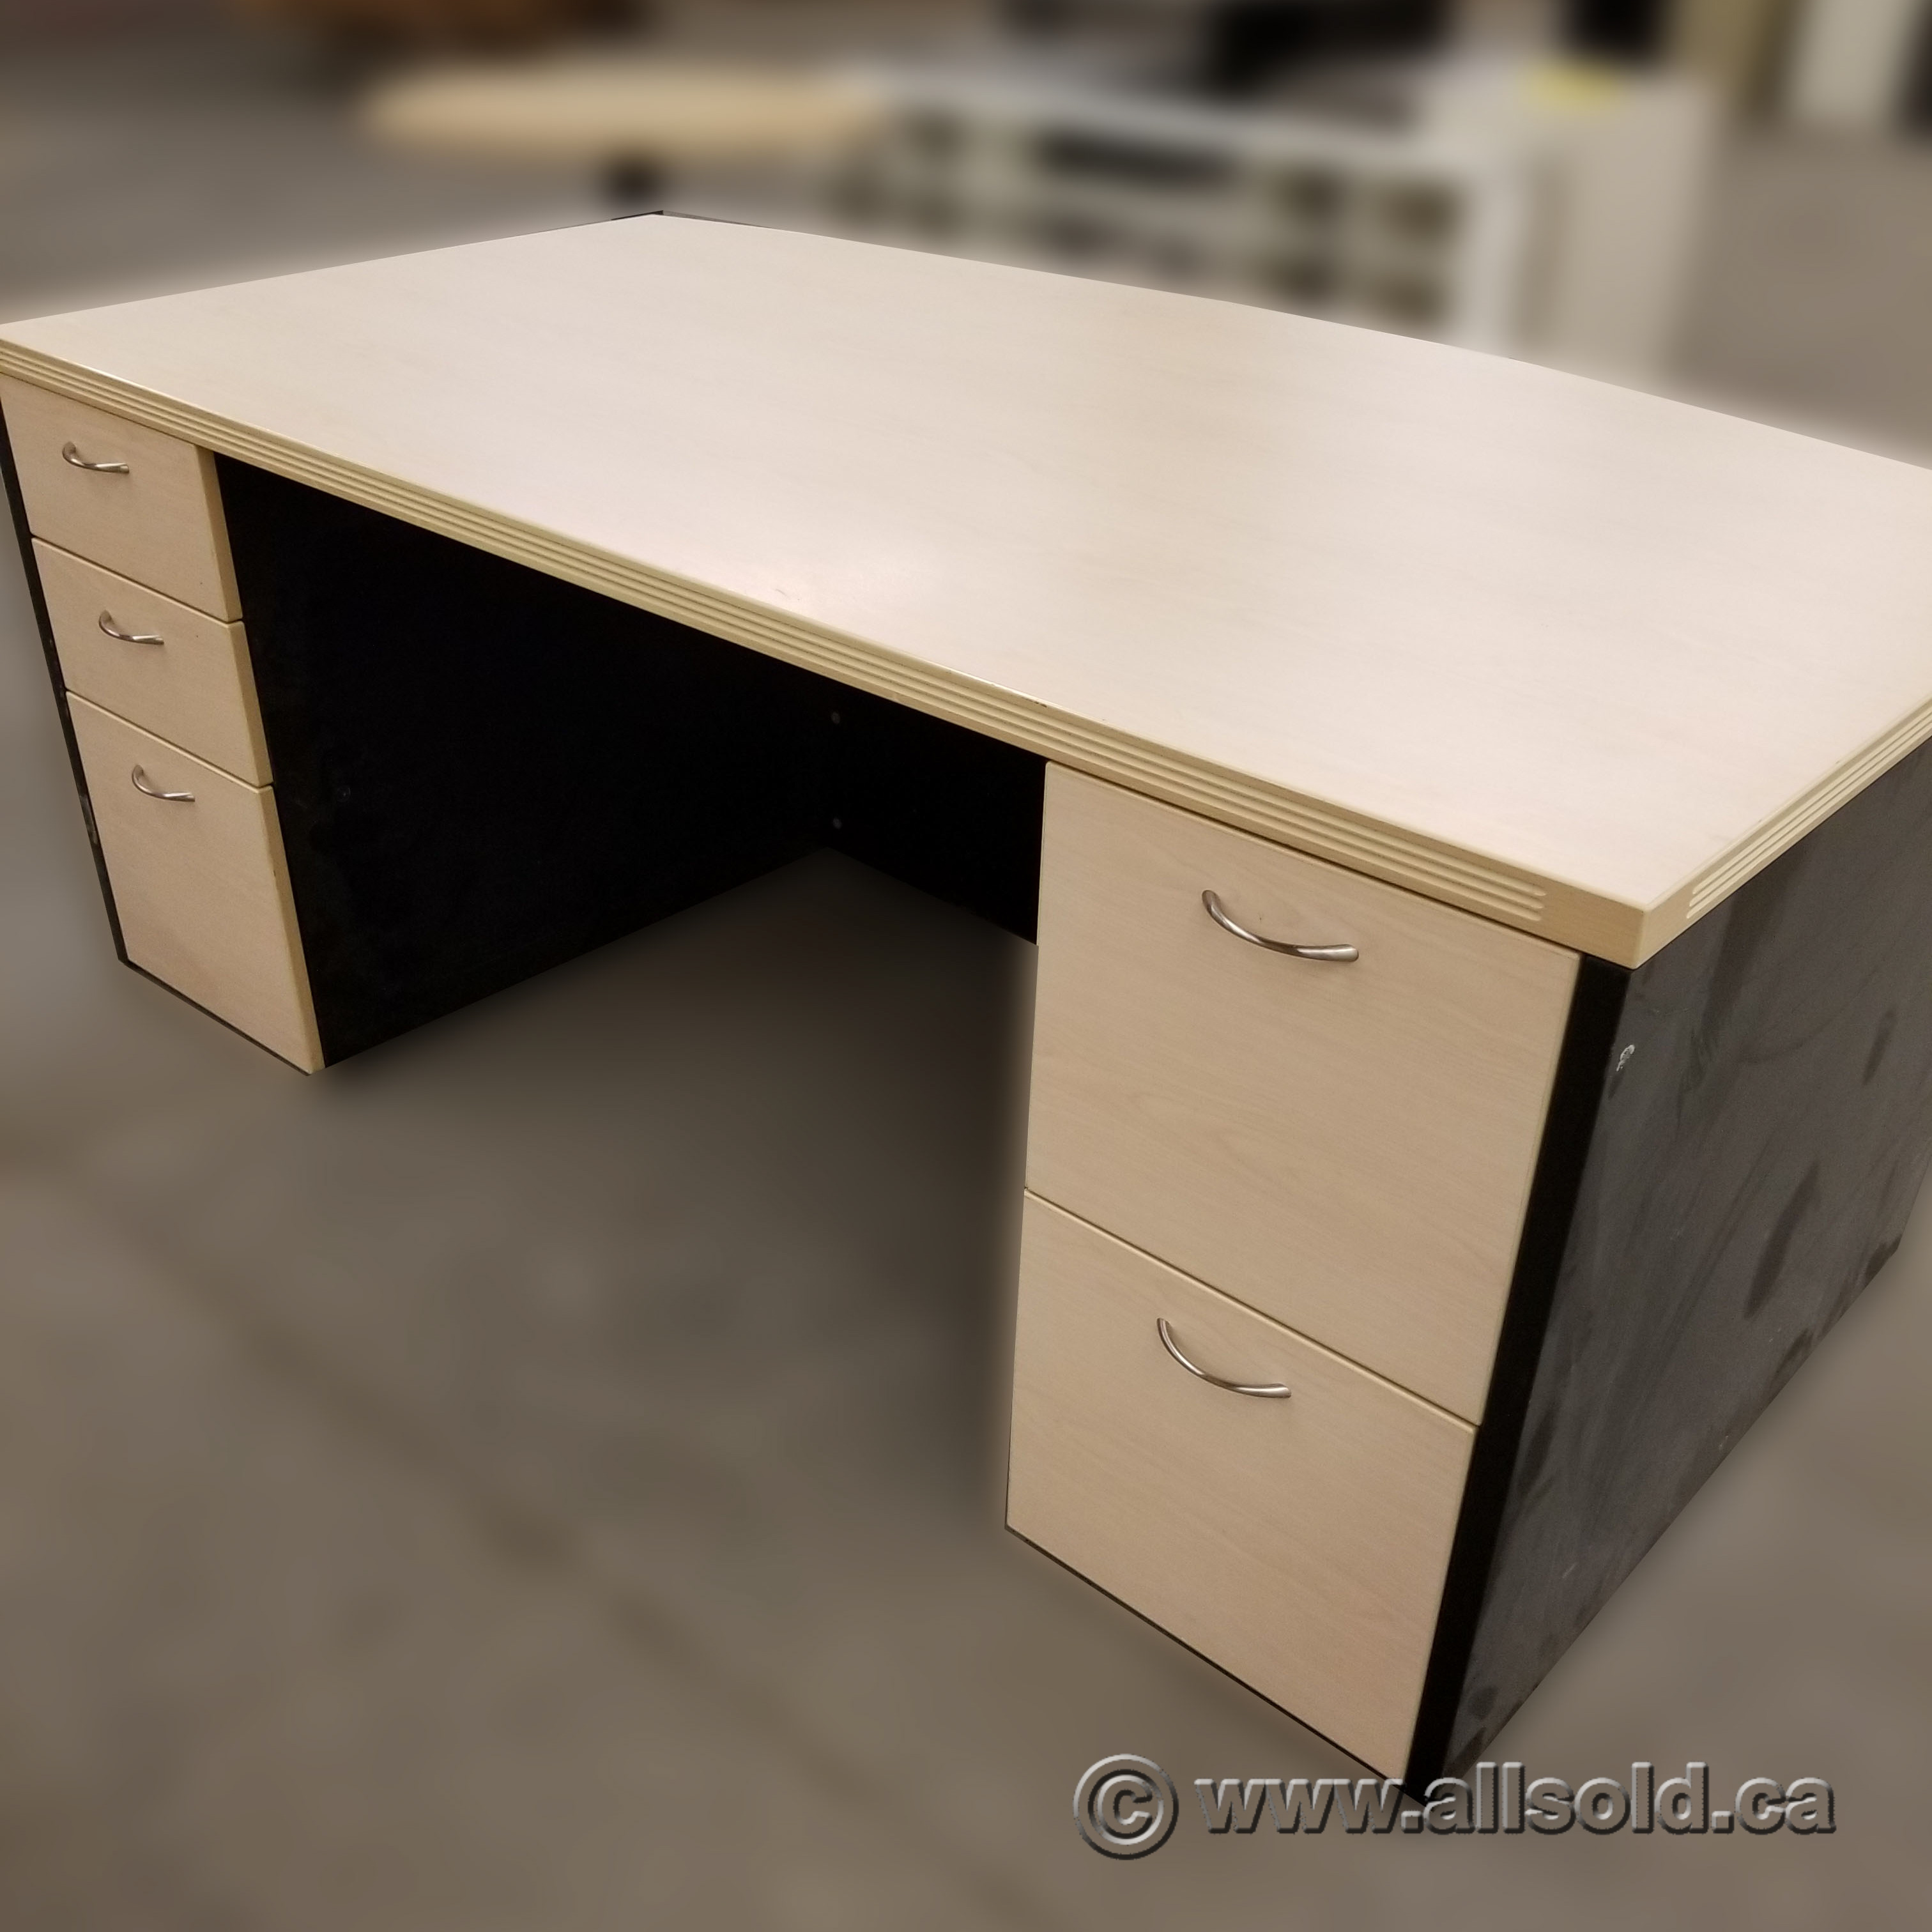 Blonde Bow Front Straight Desk With Dual Pedestals Allsold Ca Buy Sell Used Office Furniture Calgary